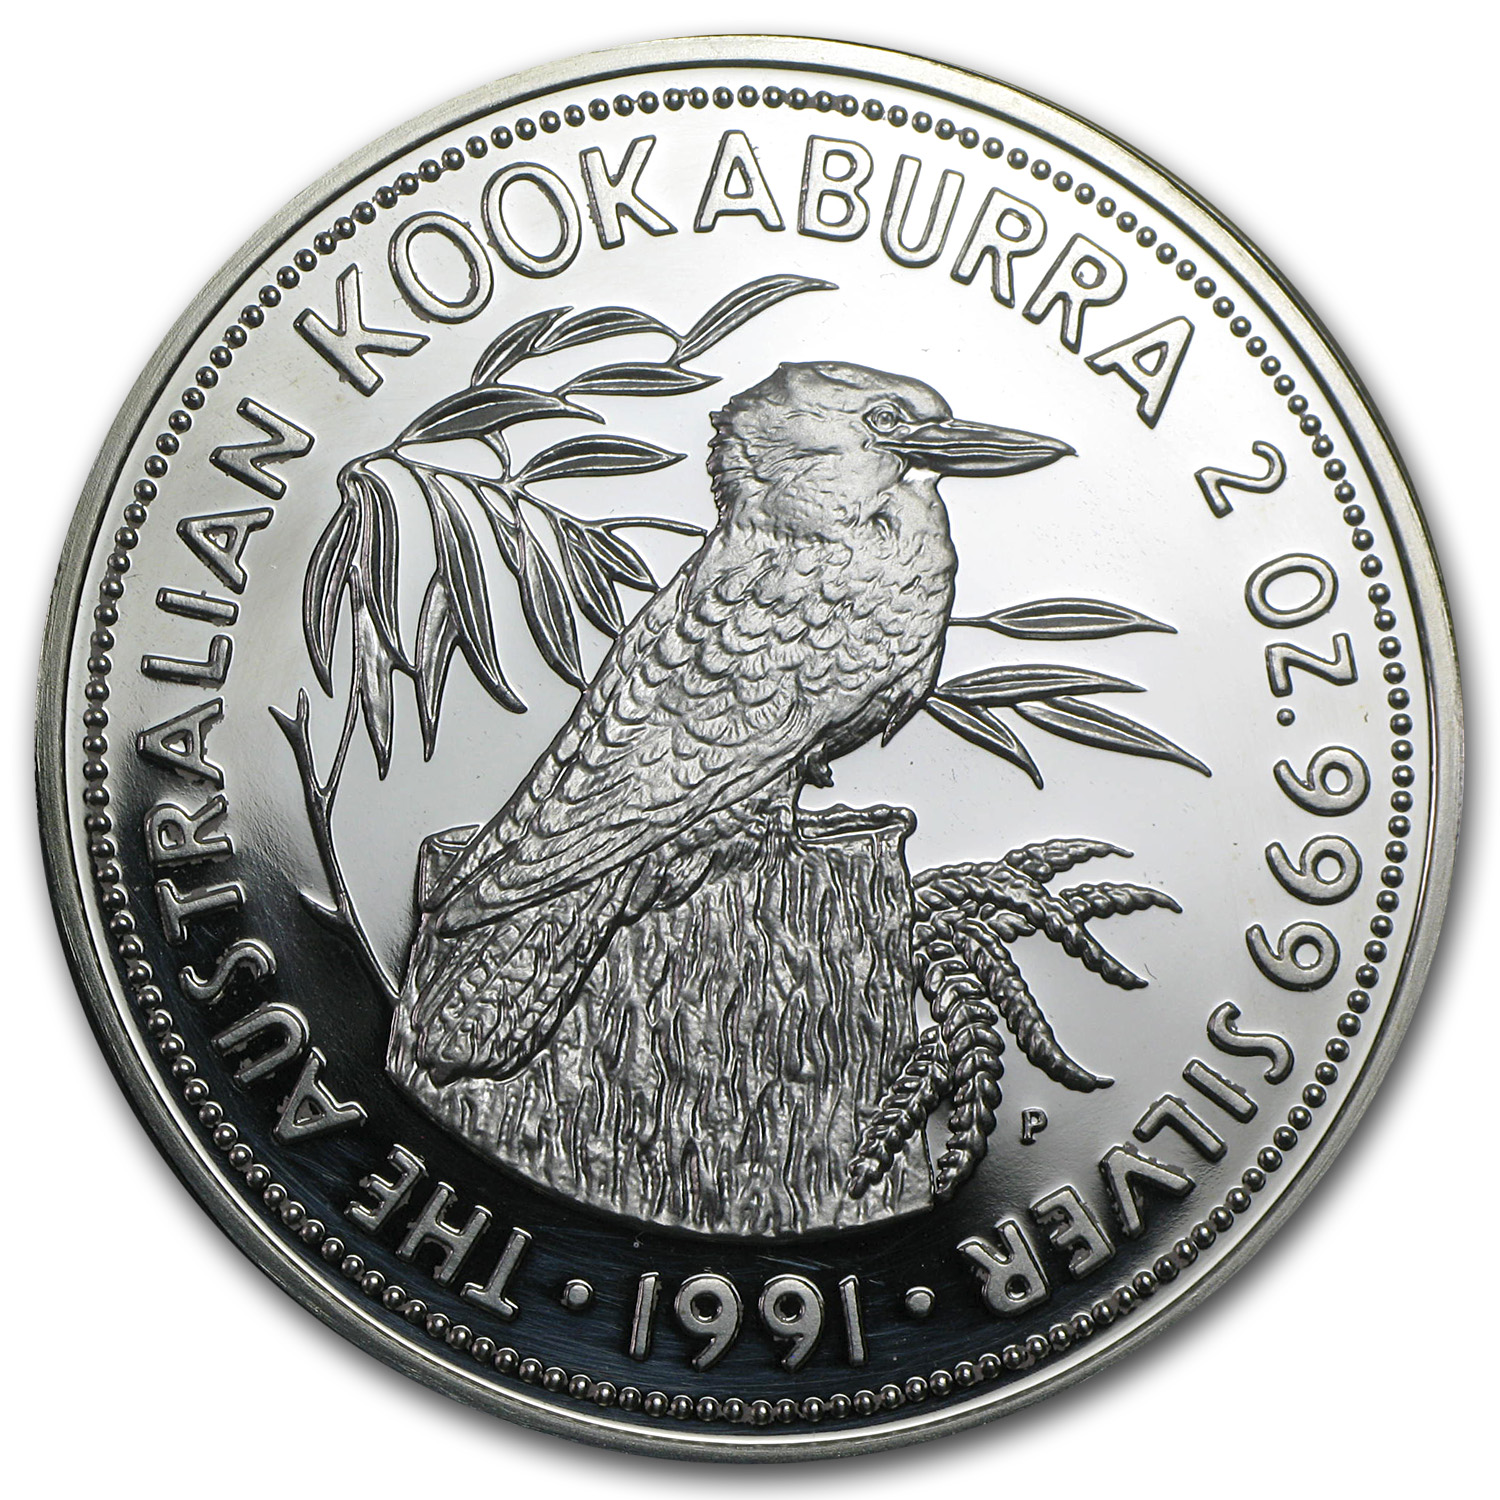 1991 2 oz Proof Silver Australian Kookaburra (Light Abrasions)